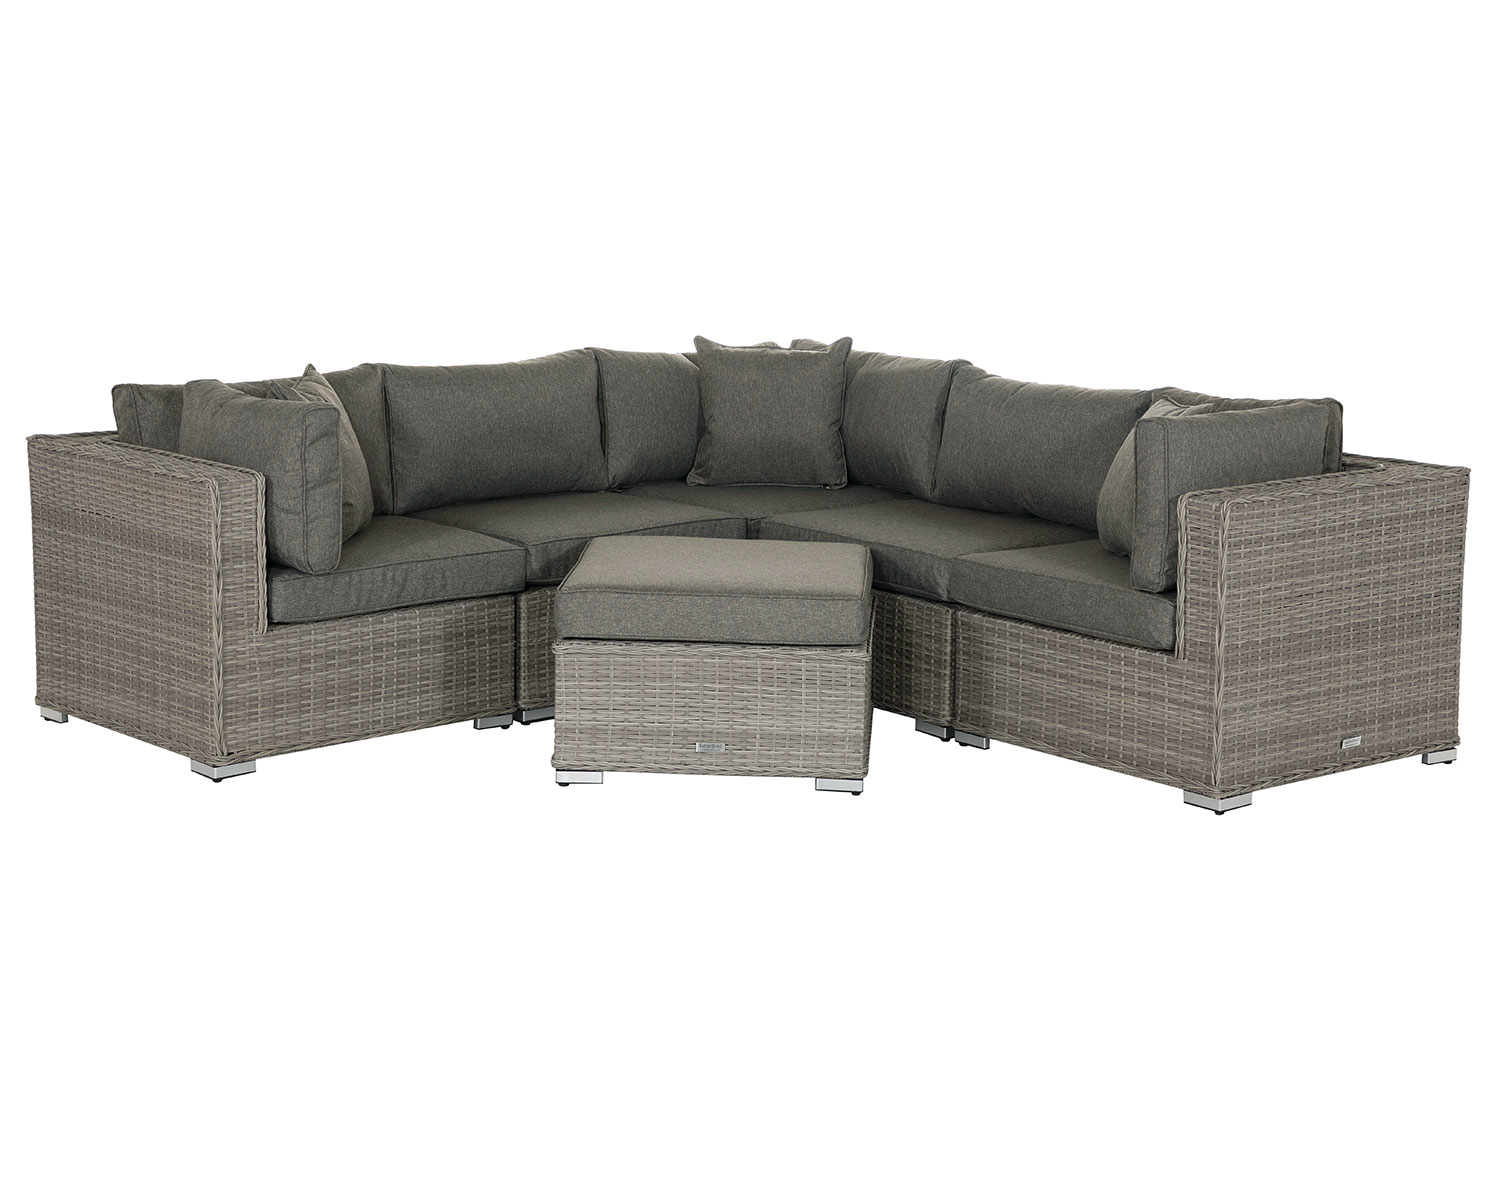 Sensational Details About Rattan Corner Sofa Set Florida 6Pc Modular Garden Furniture In Grey Footstool Onthecornerstone Fun Painted Chair Ideas Images Onthecornerstoneorg